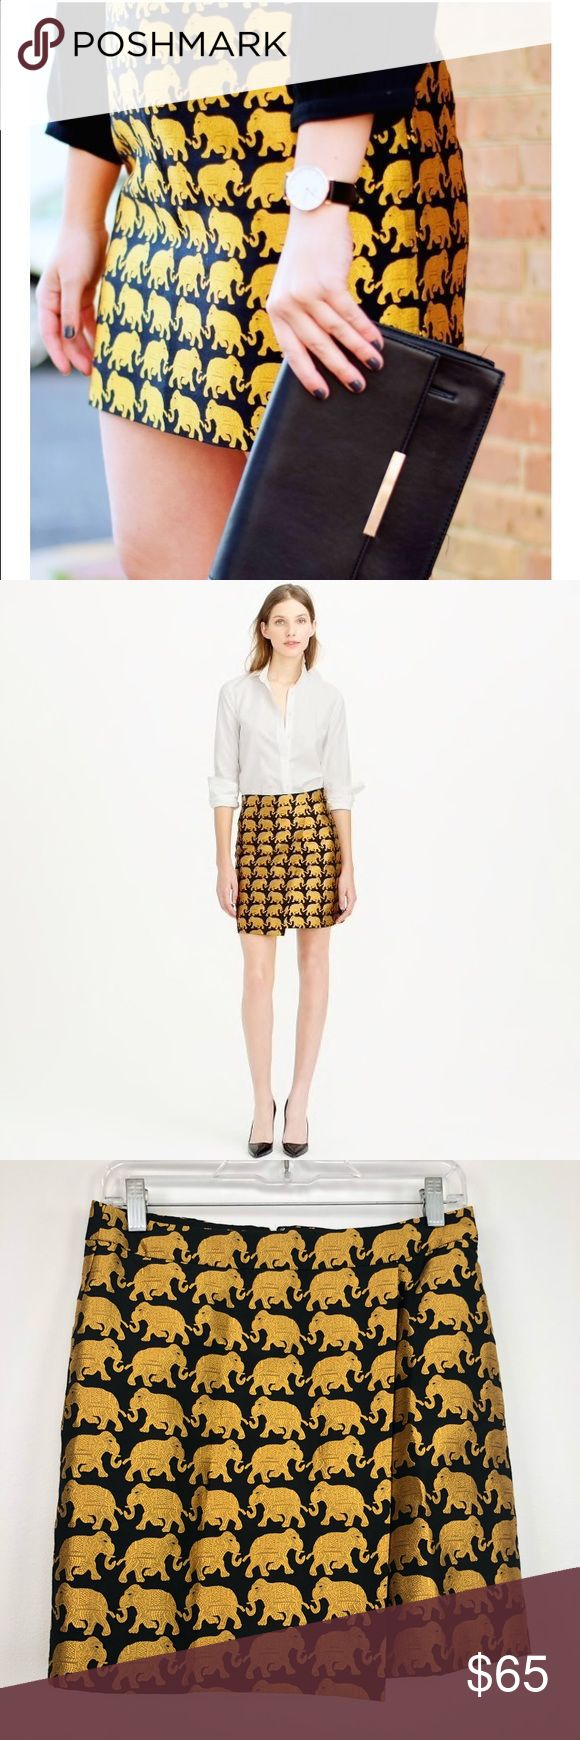 """J. Crew Origami Skirt In Elephant Parade J. Crew Origami Skirt In Elephant Parade.  Approx 14.5"""" waist and 17"""" length.  Zip closure.  Fully lined.  Excellent condition.  A2. J. Crew Skirts Mini"""